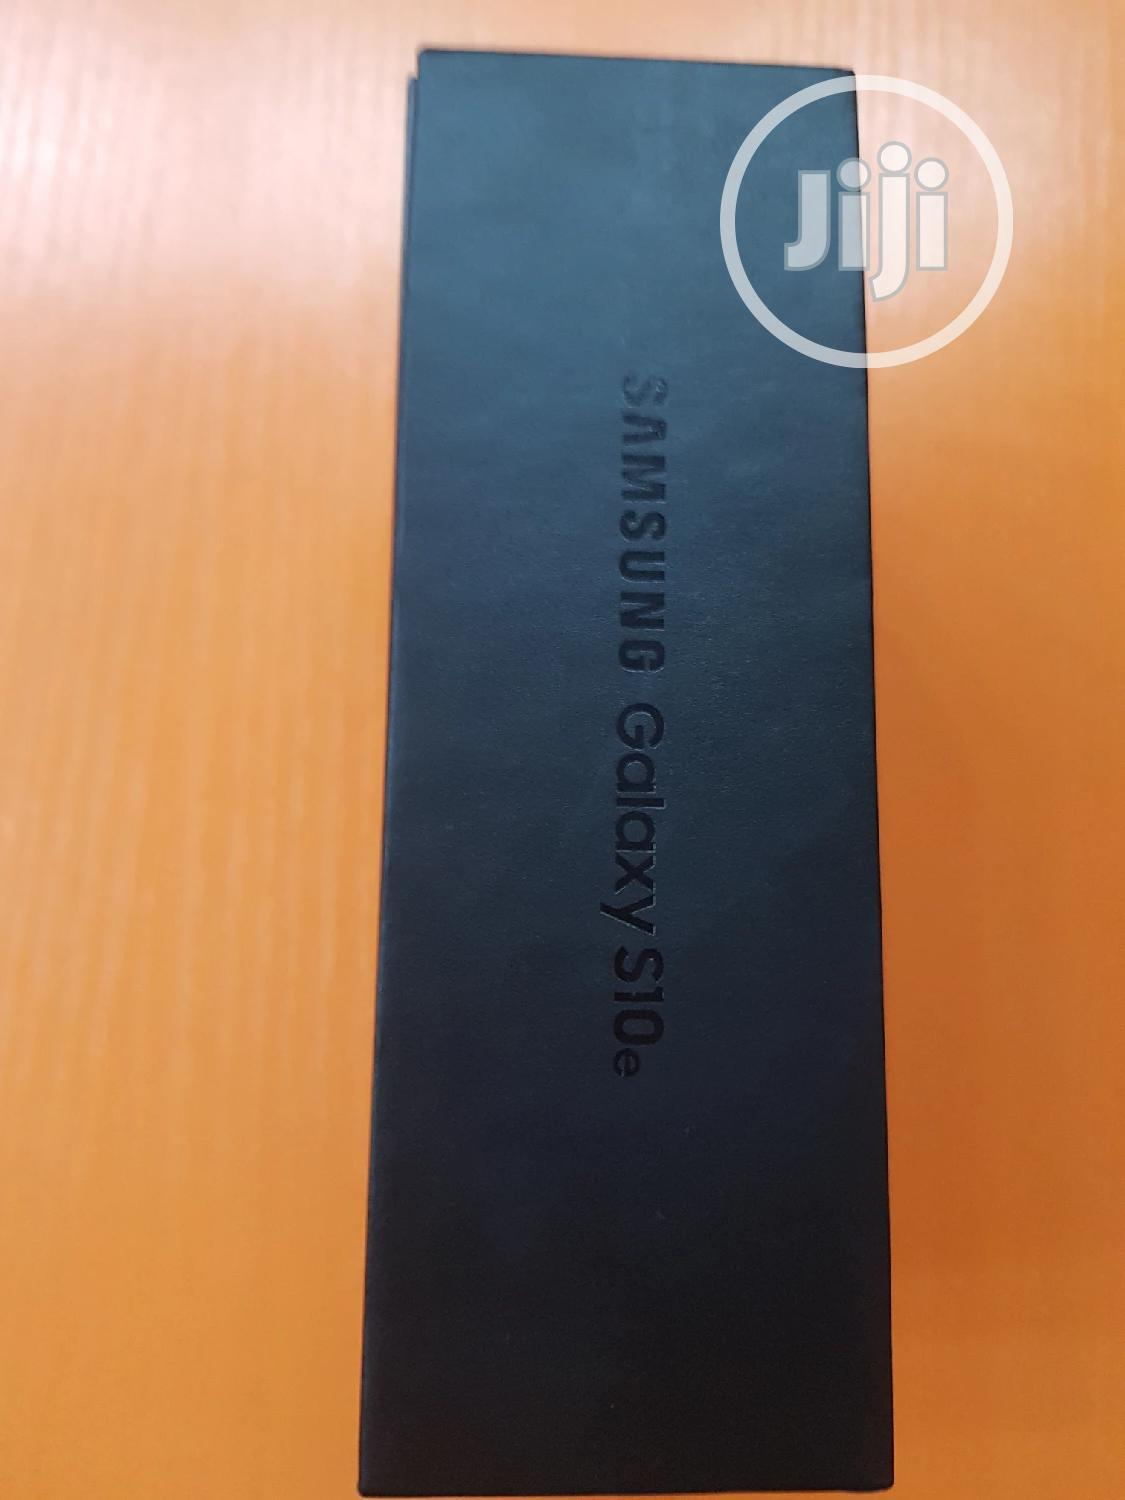 New Samsung Galaxy S10e 128 GB Black | Mobile Phones for sale in Ikeja, Lagos State, Nigeria